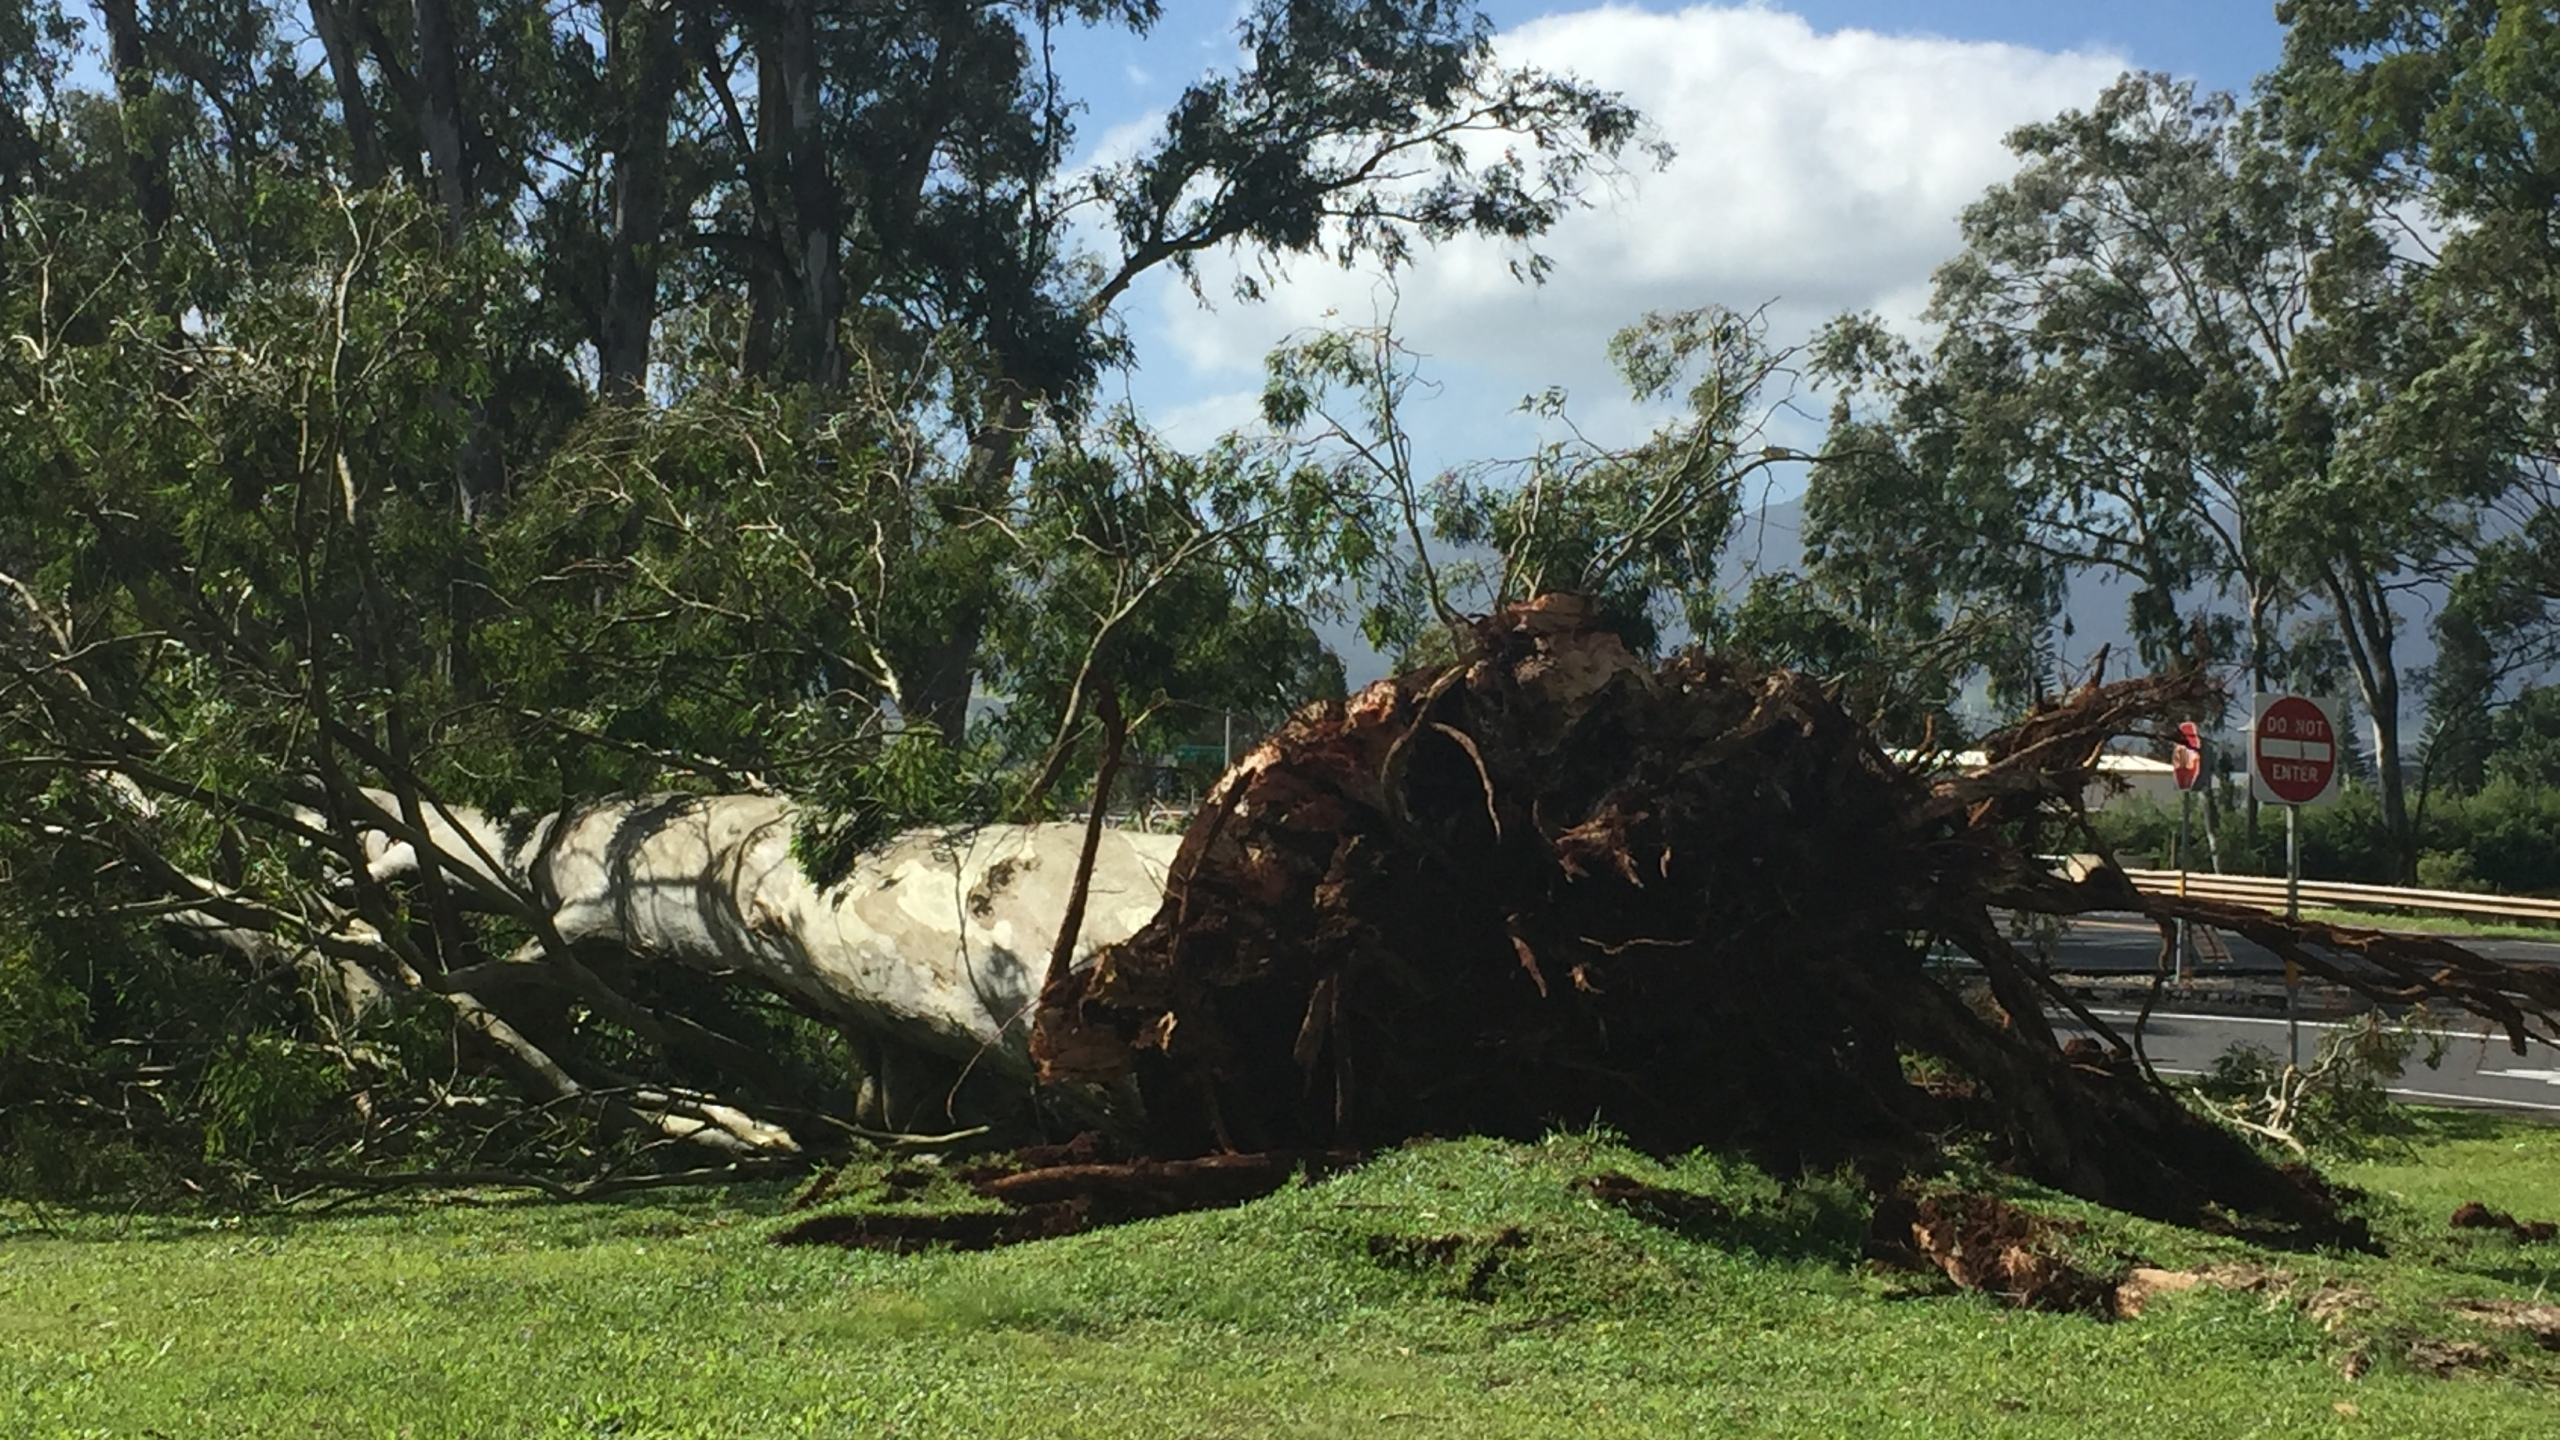 uprooted tree by H2 entrance near kahelu and wikao_134779